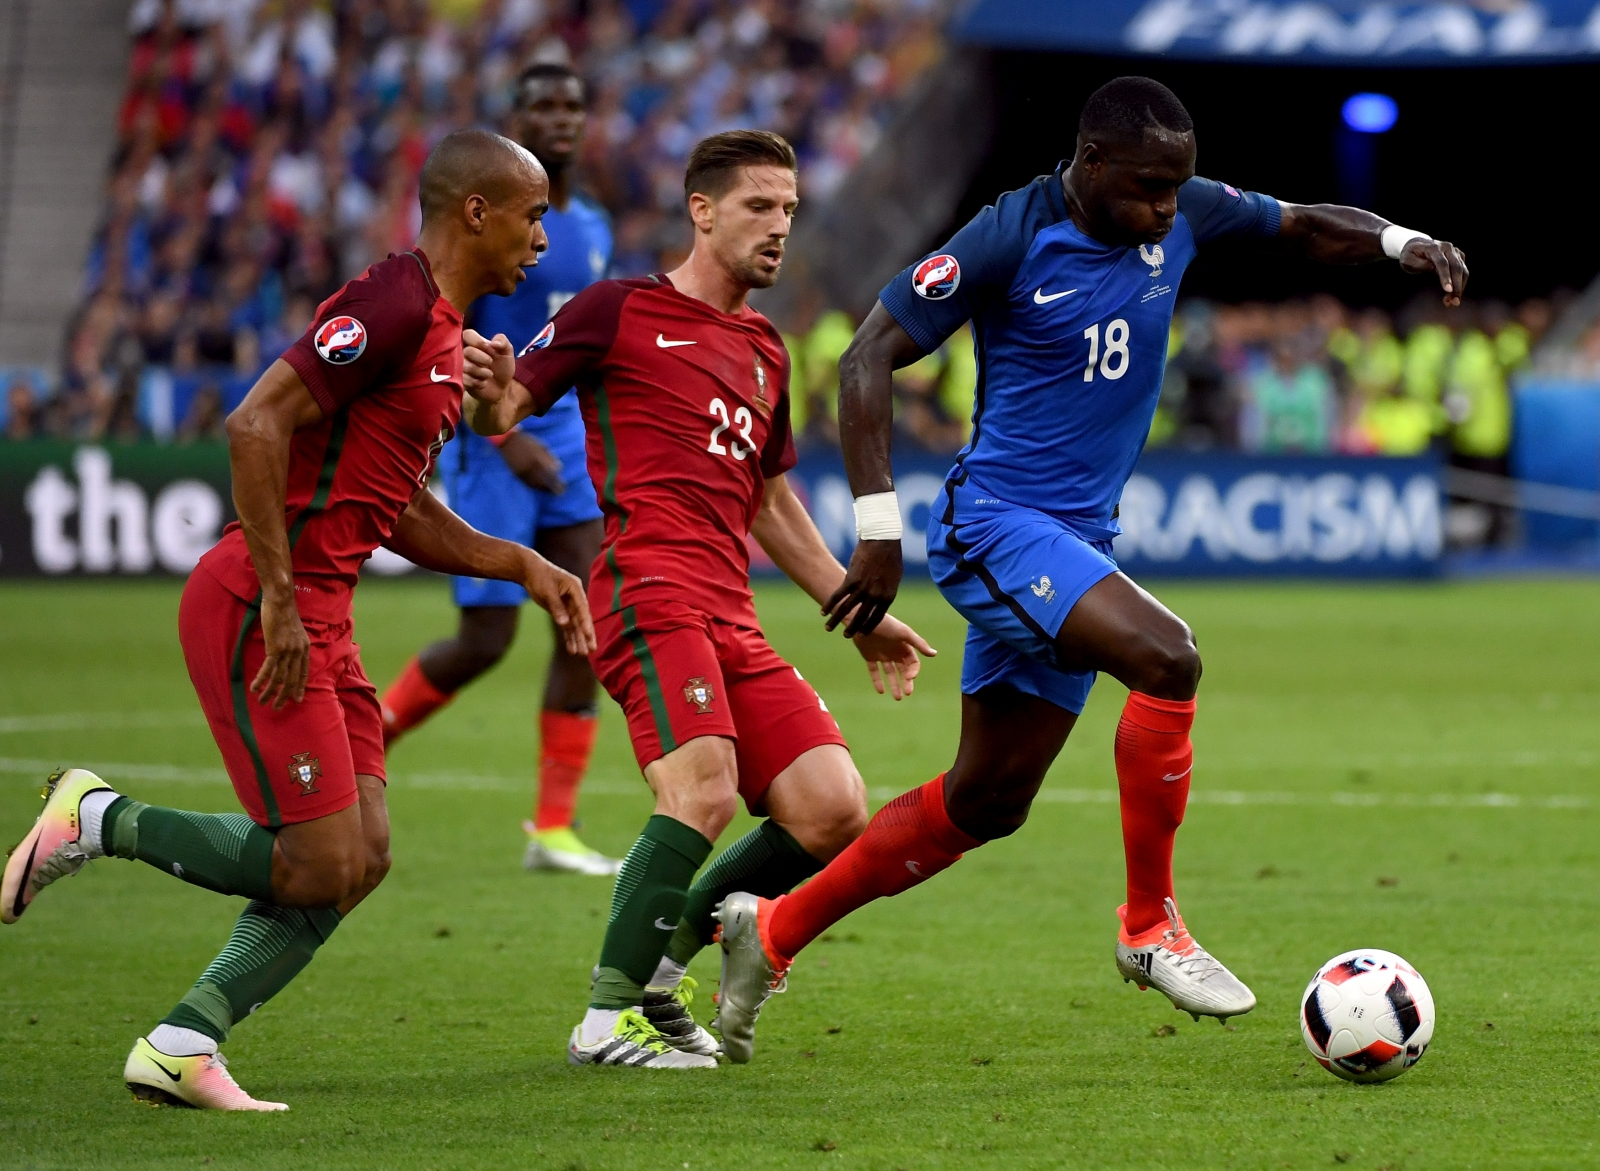 Newcastle midfielder Moussa Sissoko flattered by Real Madrid links